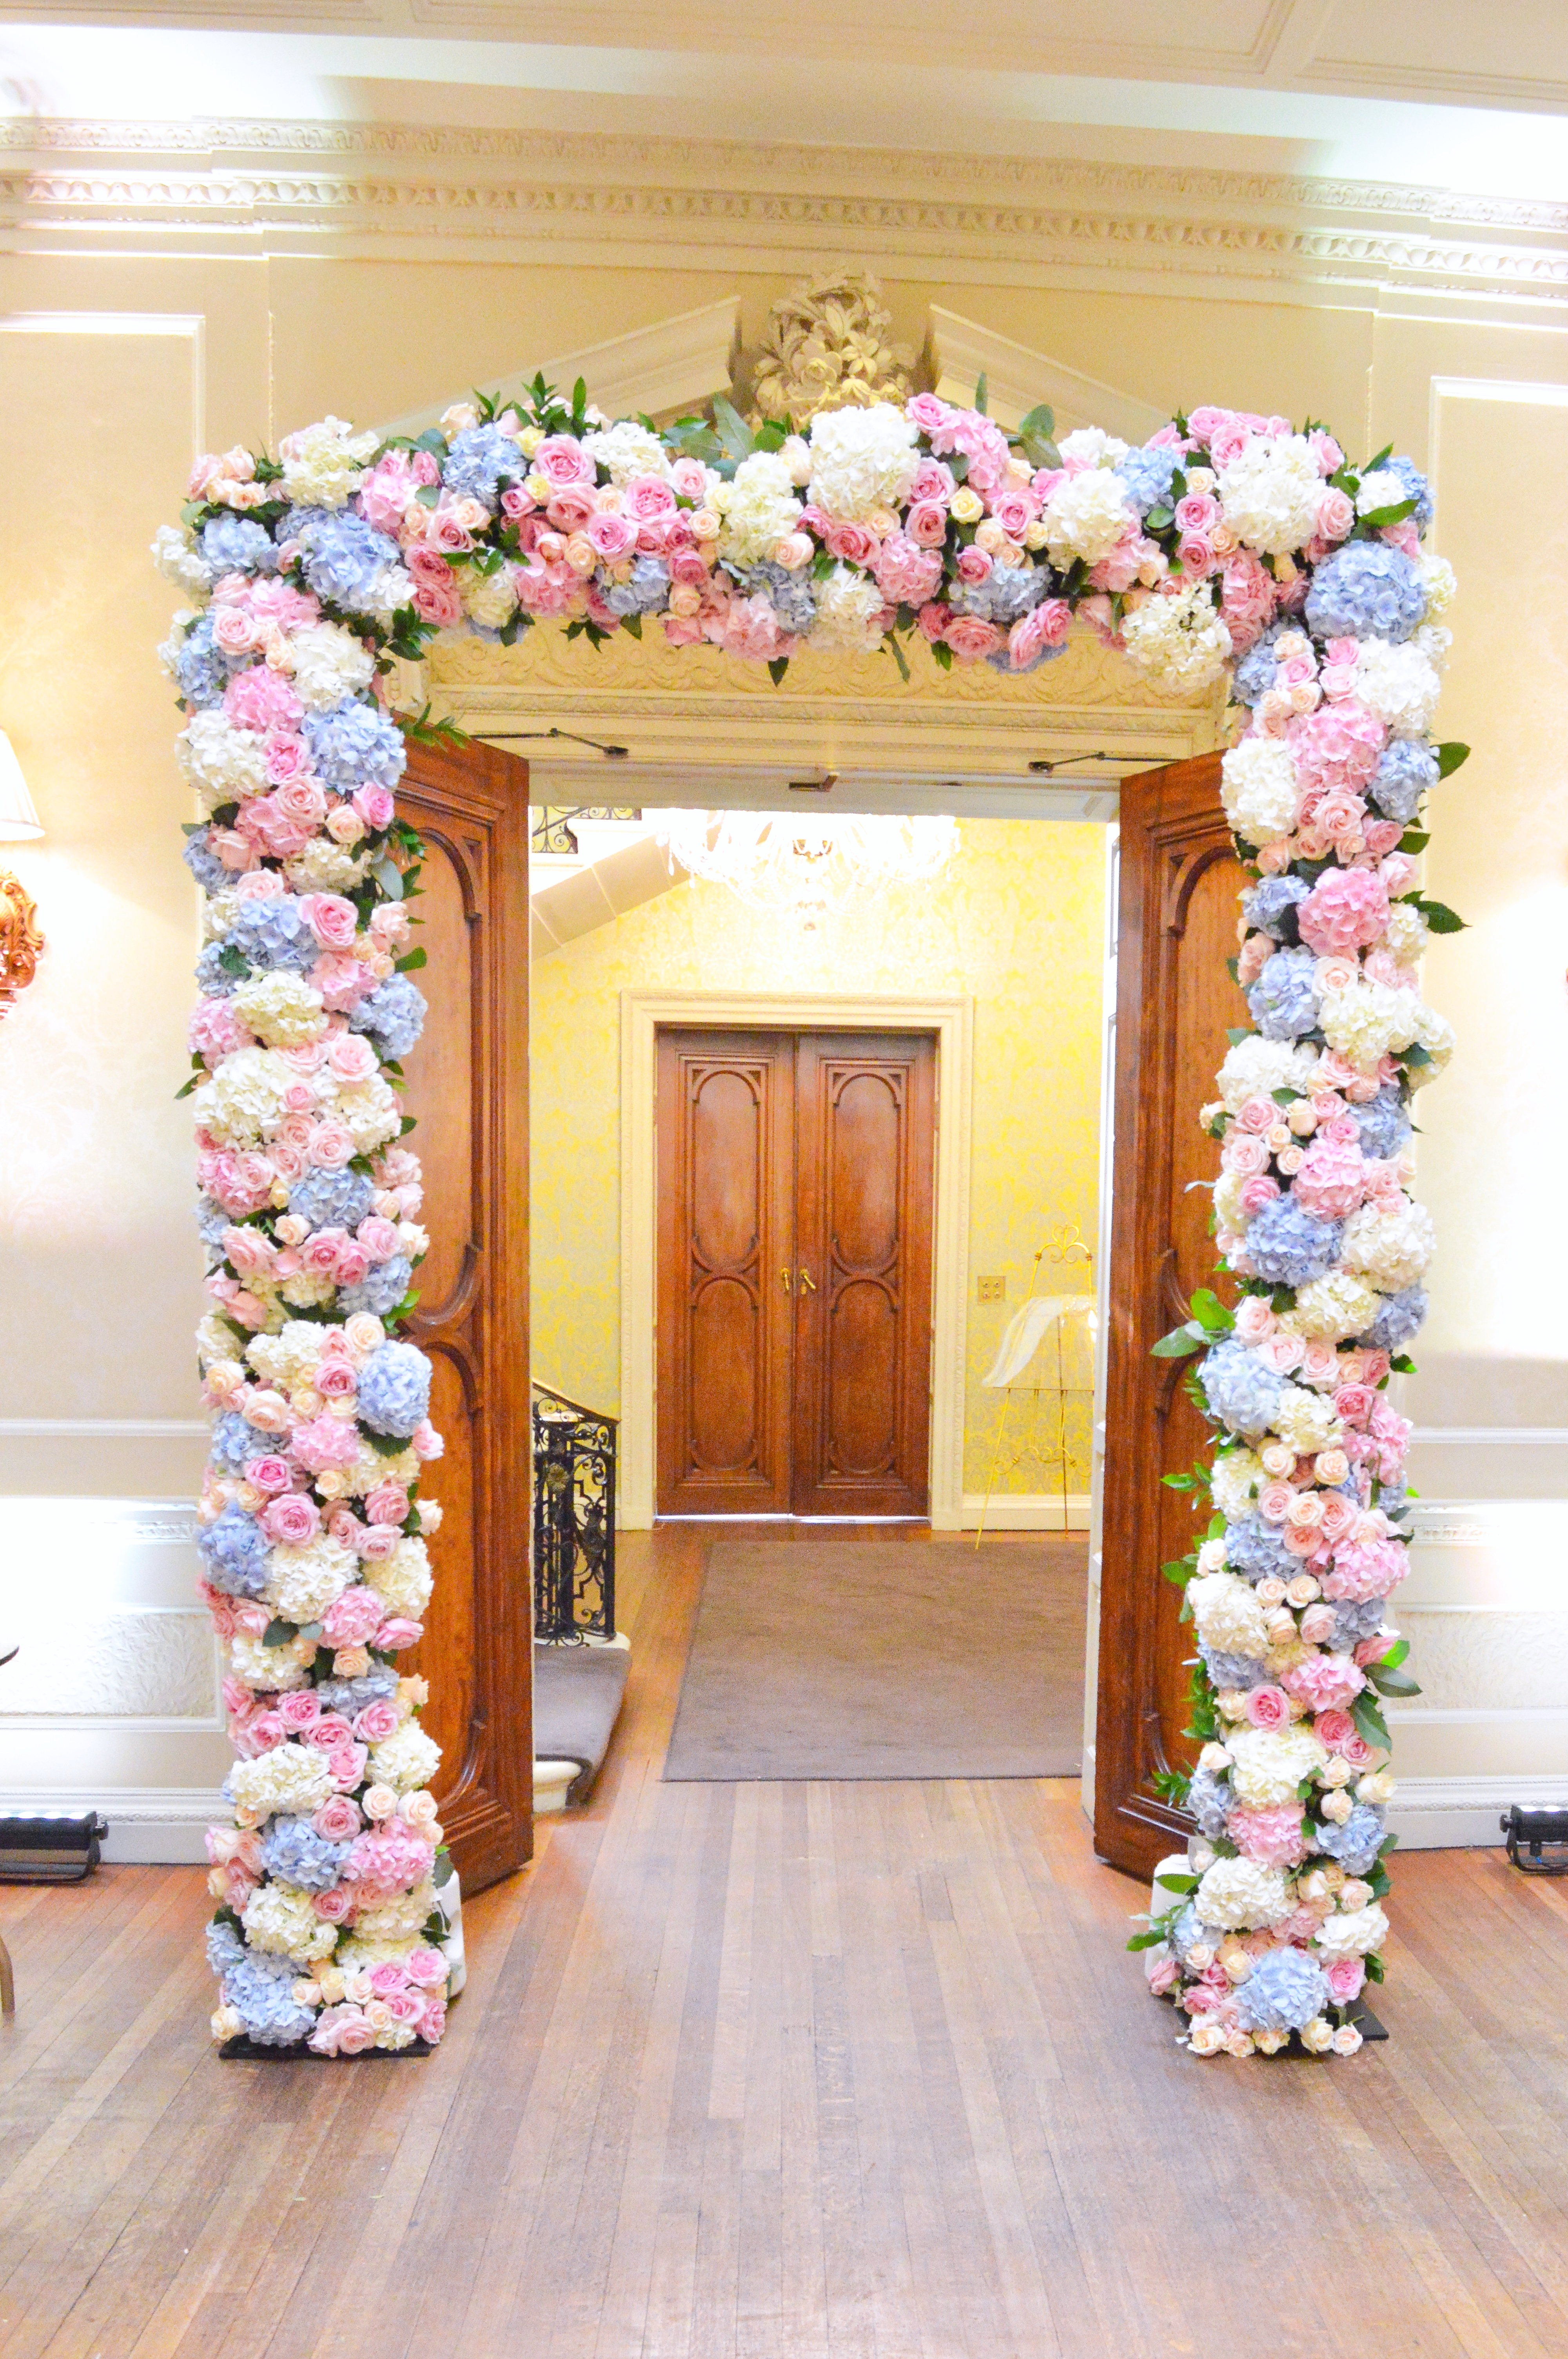 Dusty blue and pink wedding flowers arch registrar table head toptable floral garland wedding ceremony aisle Cherie Kelly cakes London Hedsor House (2)